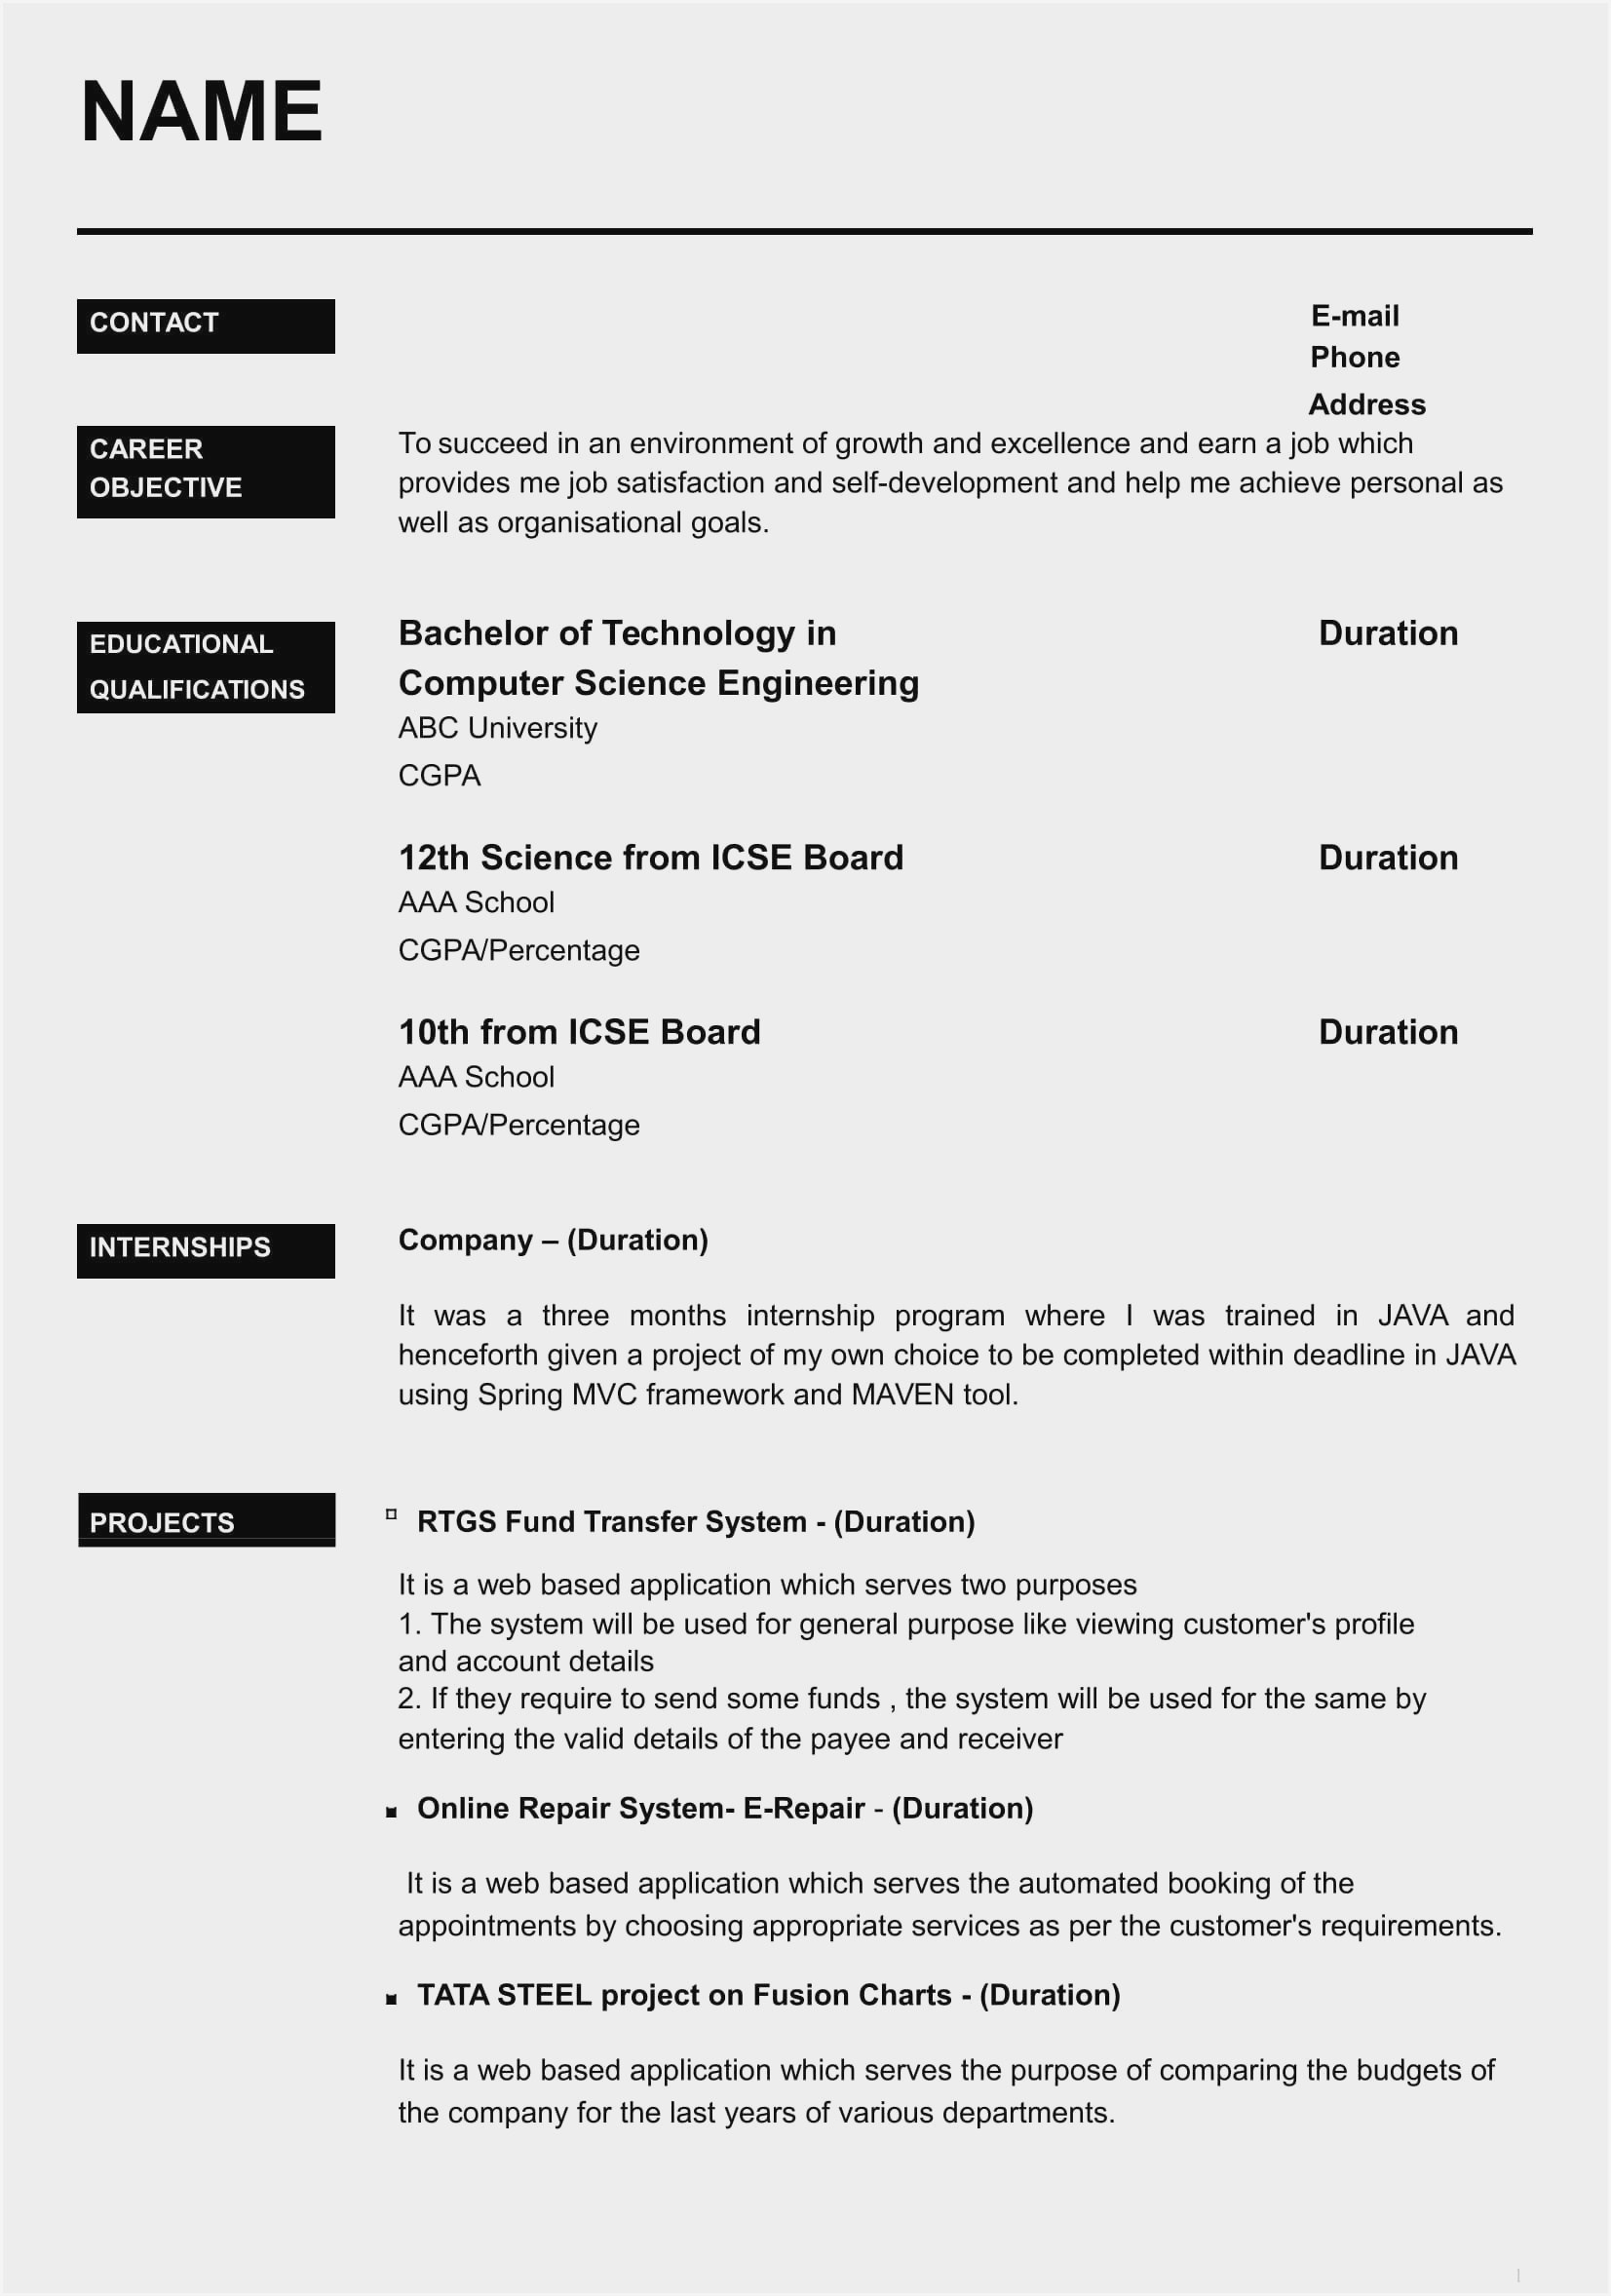 resume format for engineering students free sample student does need cover letter pcu rn Resume Engineering Student Resume